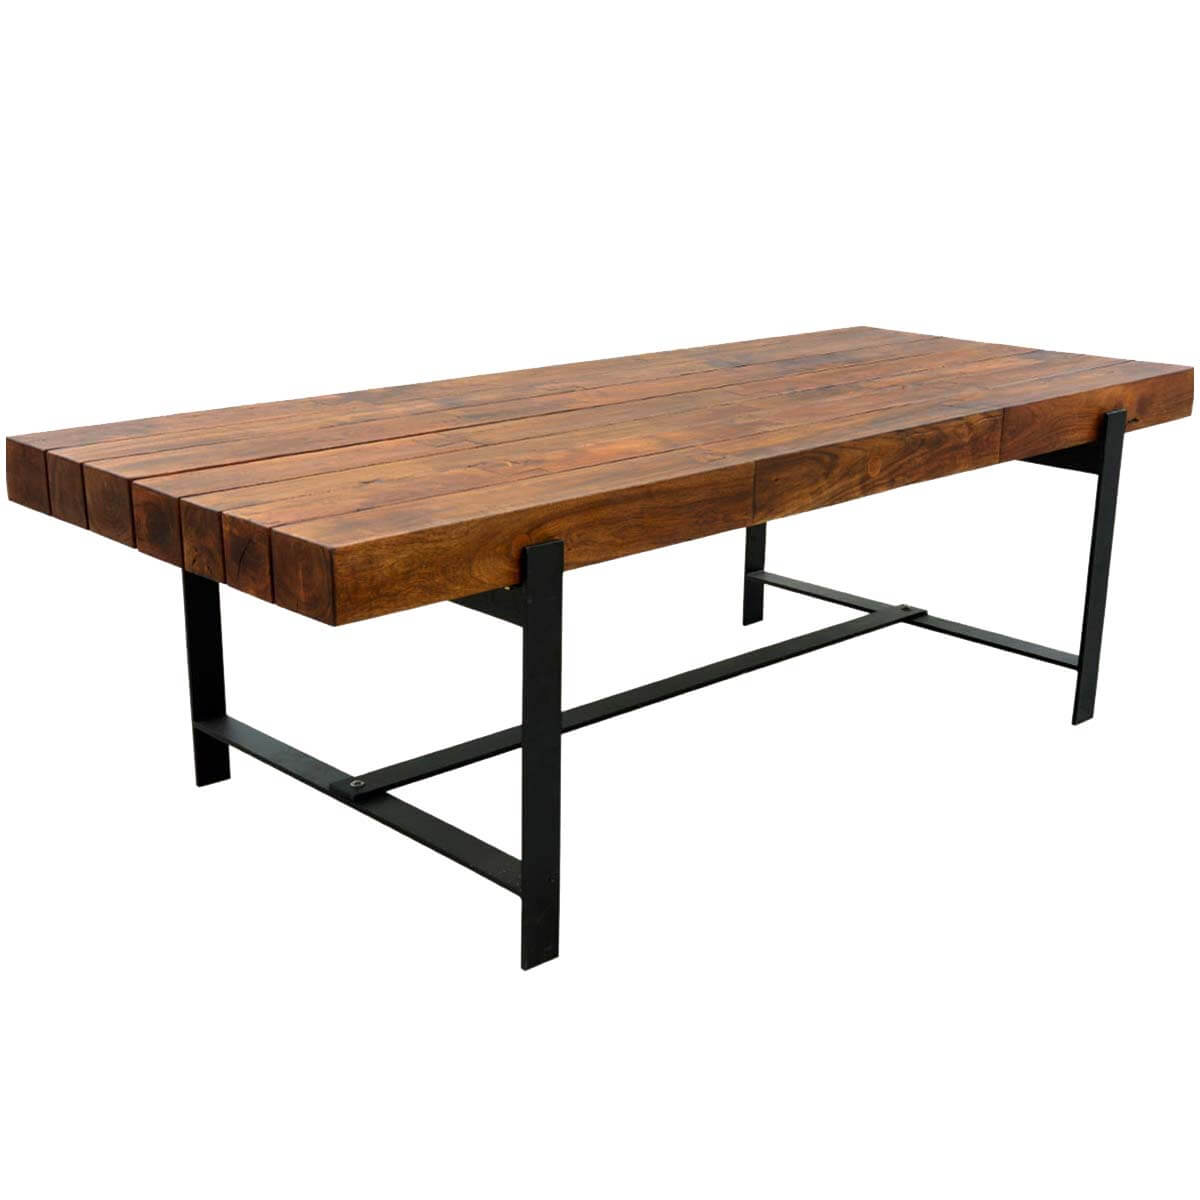 industrial iron acacia wood 94 large rustic dining table